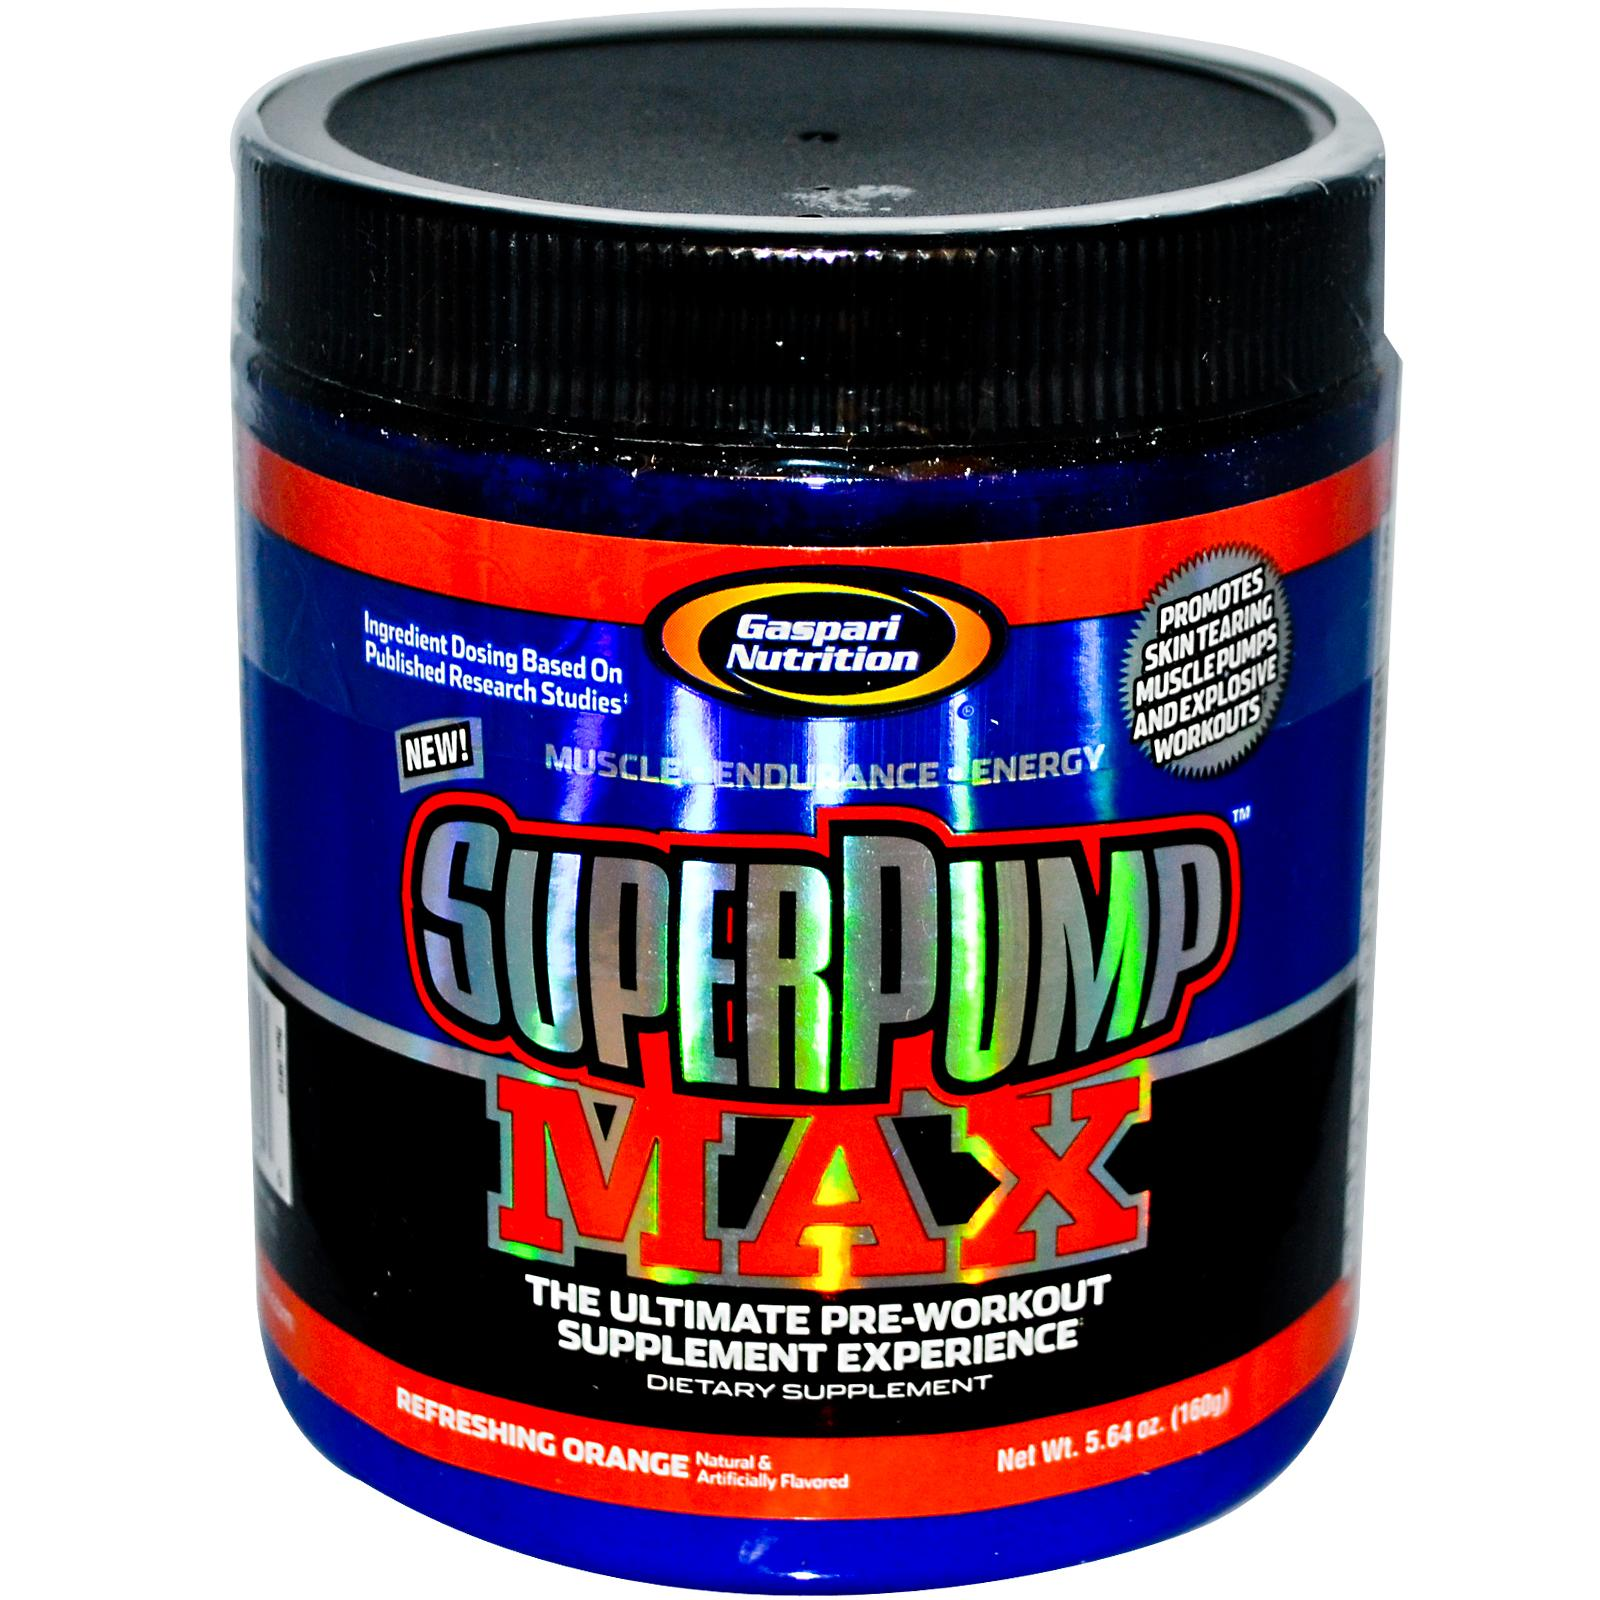 Pre workout supplement for cross training 07